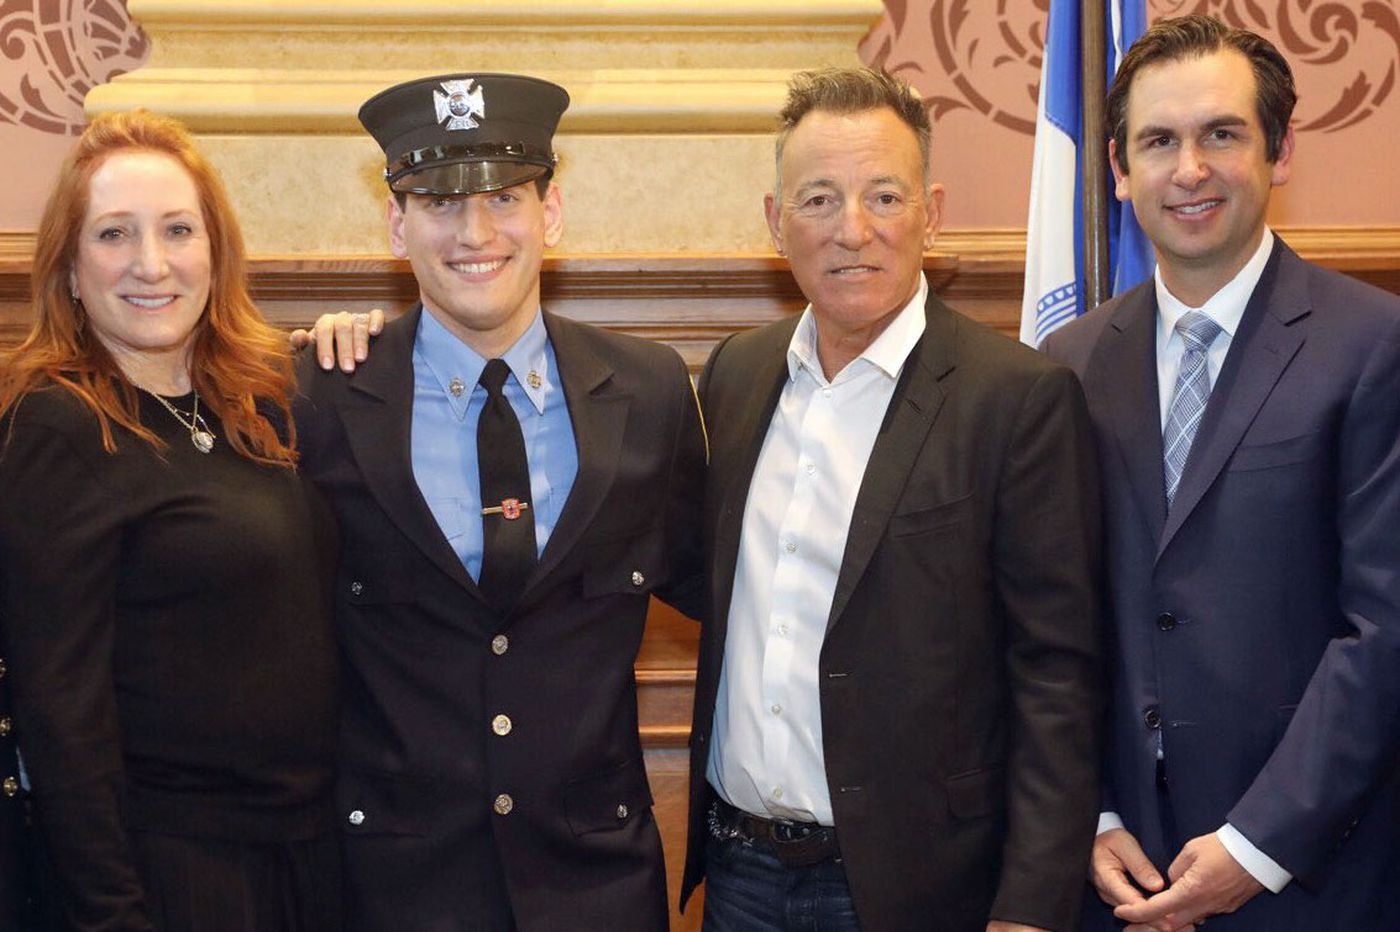 Bruce Springsteen's son is now officially a Jersey City firefighter